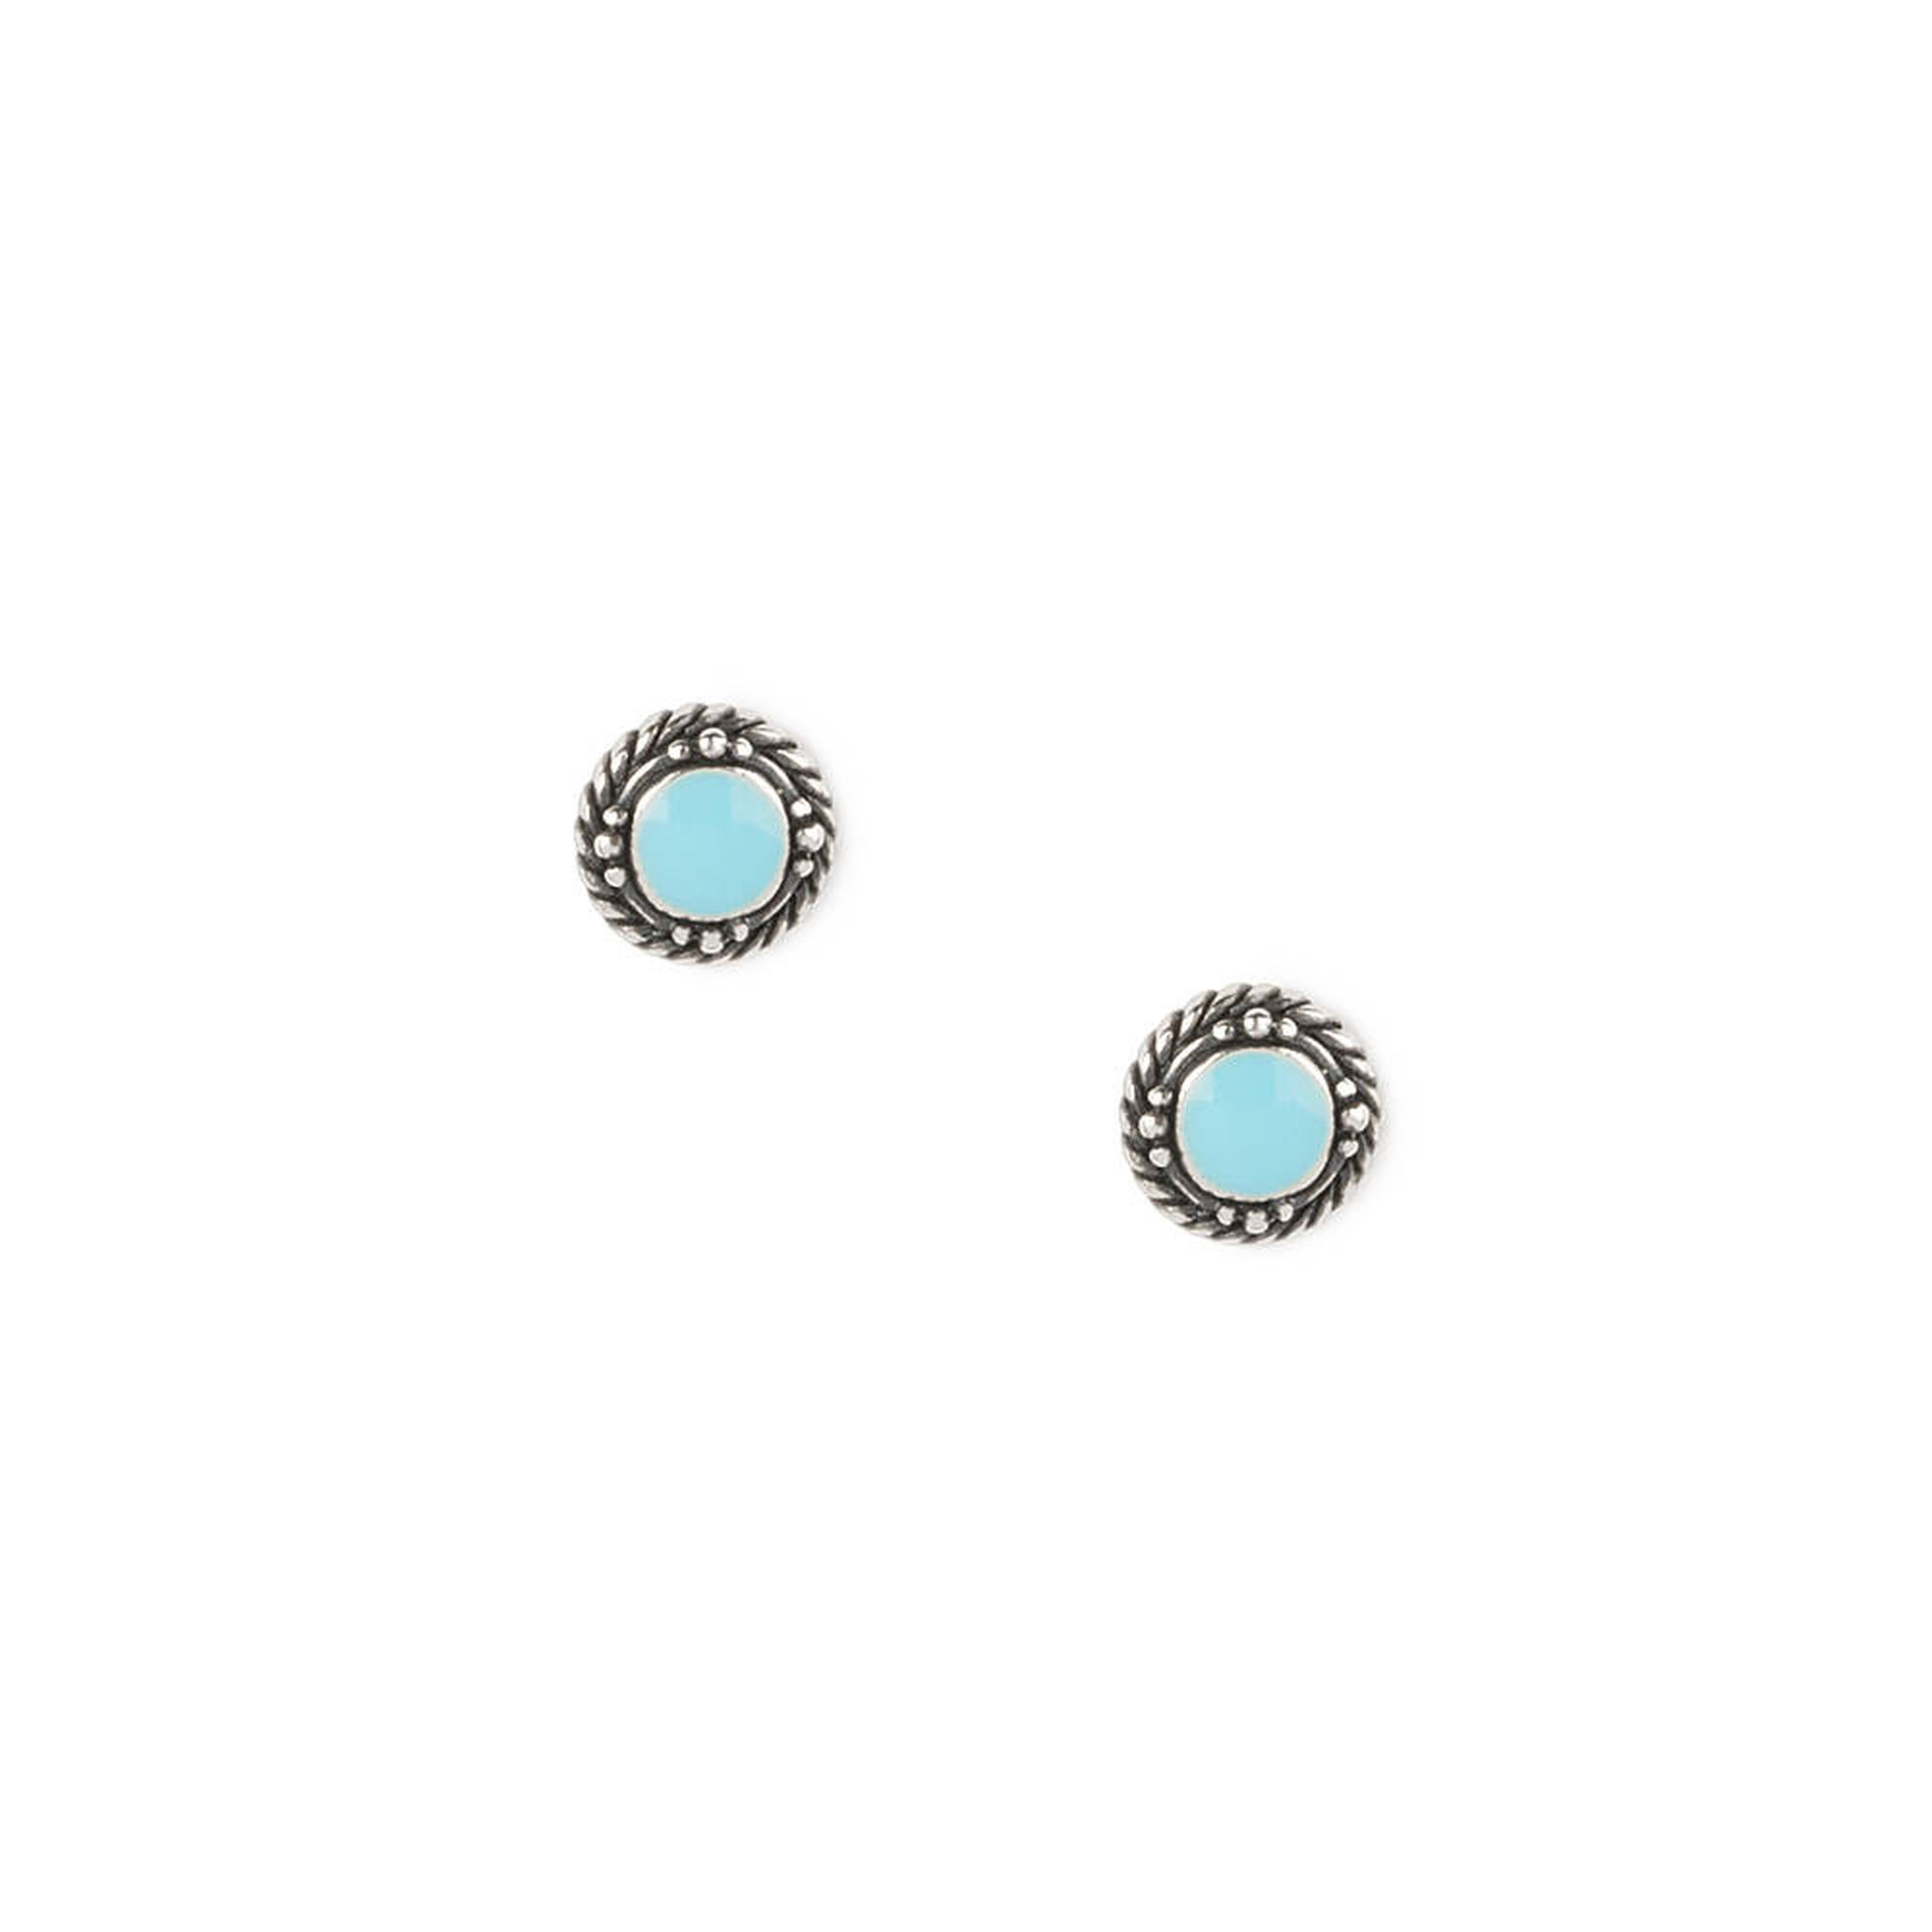 stud and indieandharper jewels products jewelry indie post gypsy bohemian earrings jewellery turquoise festival harper